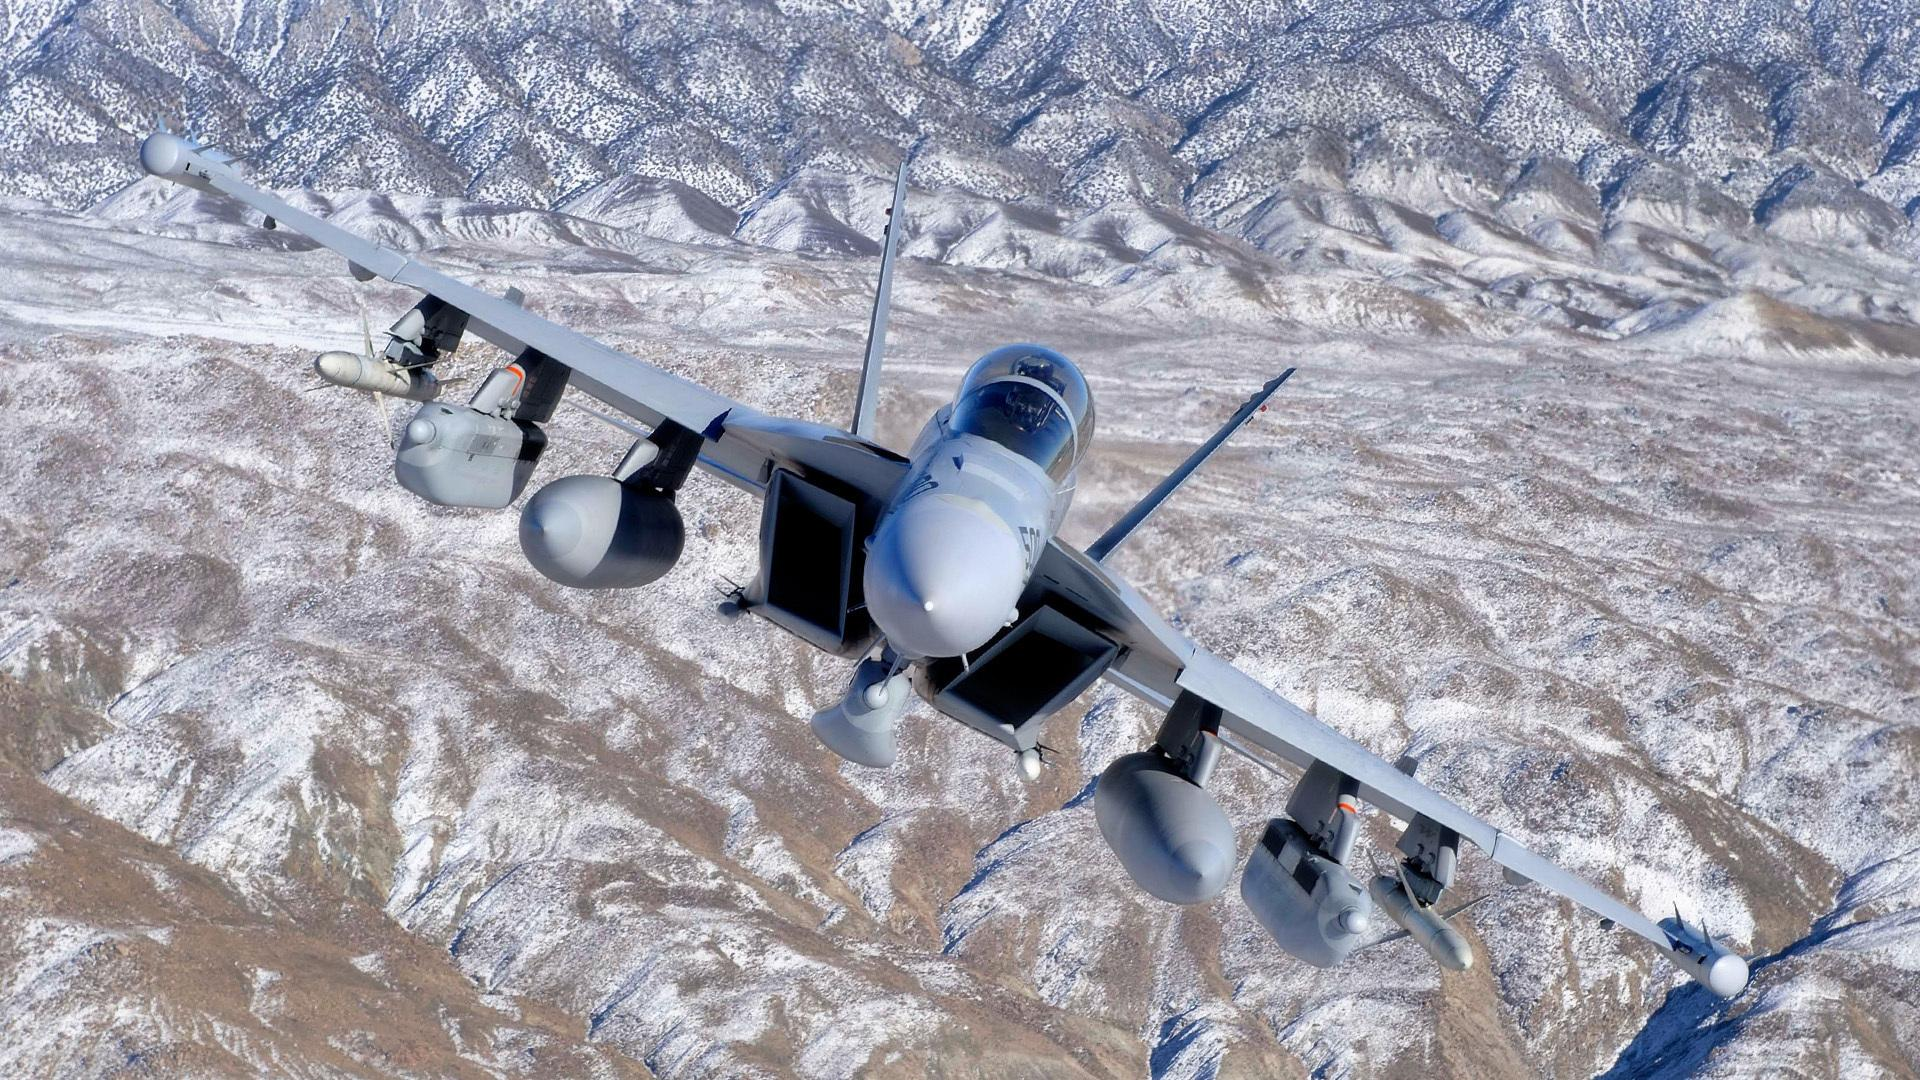 Boeing EA-18G Growler wallpapers HD quality